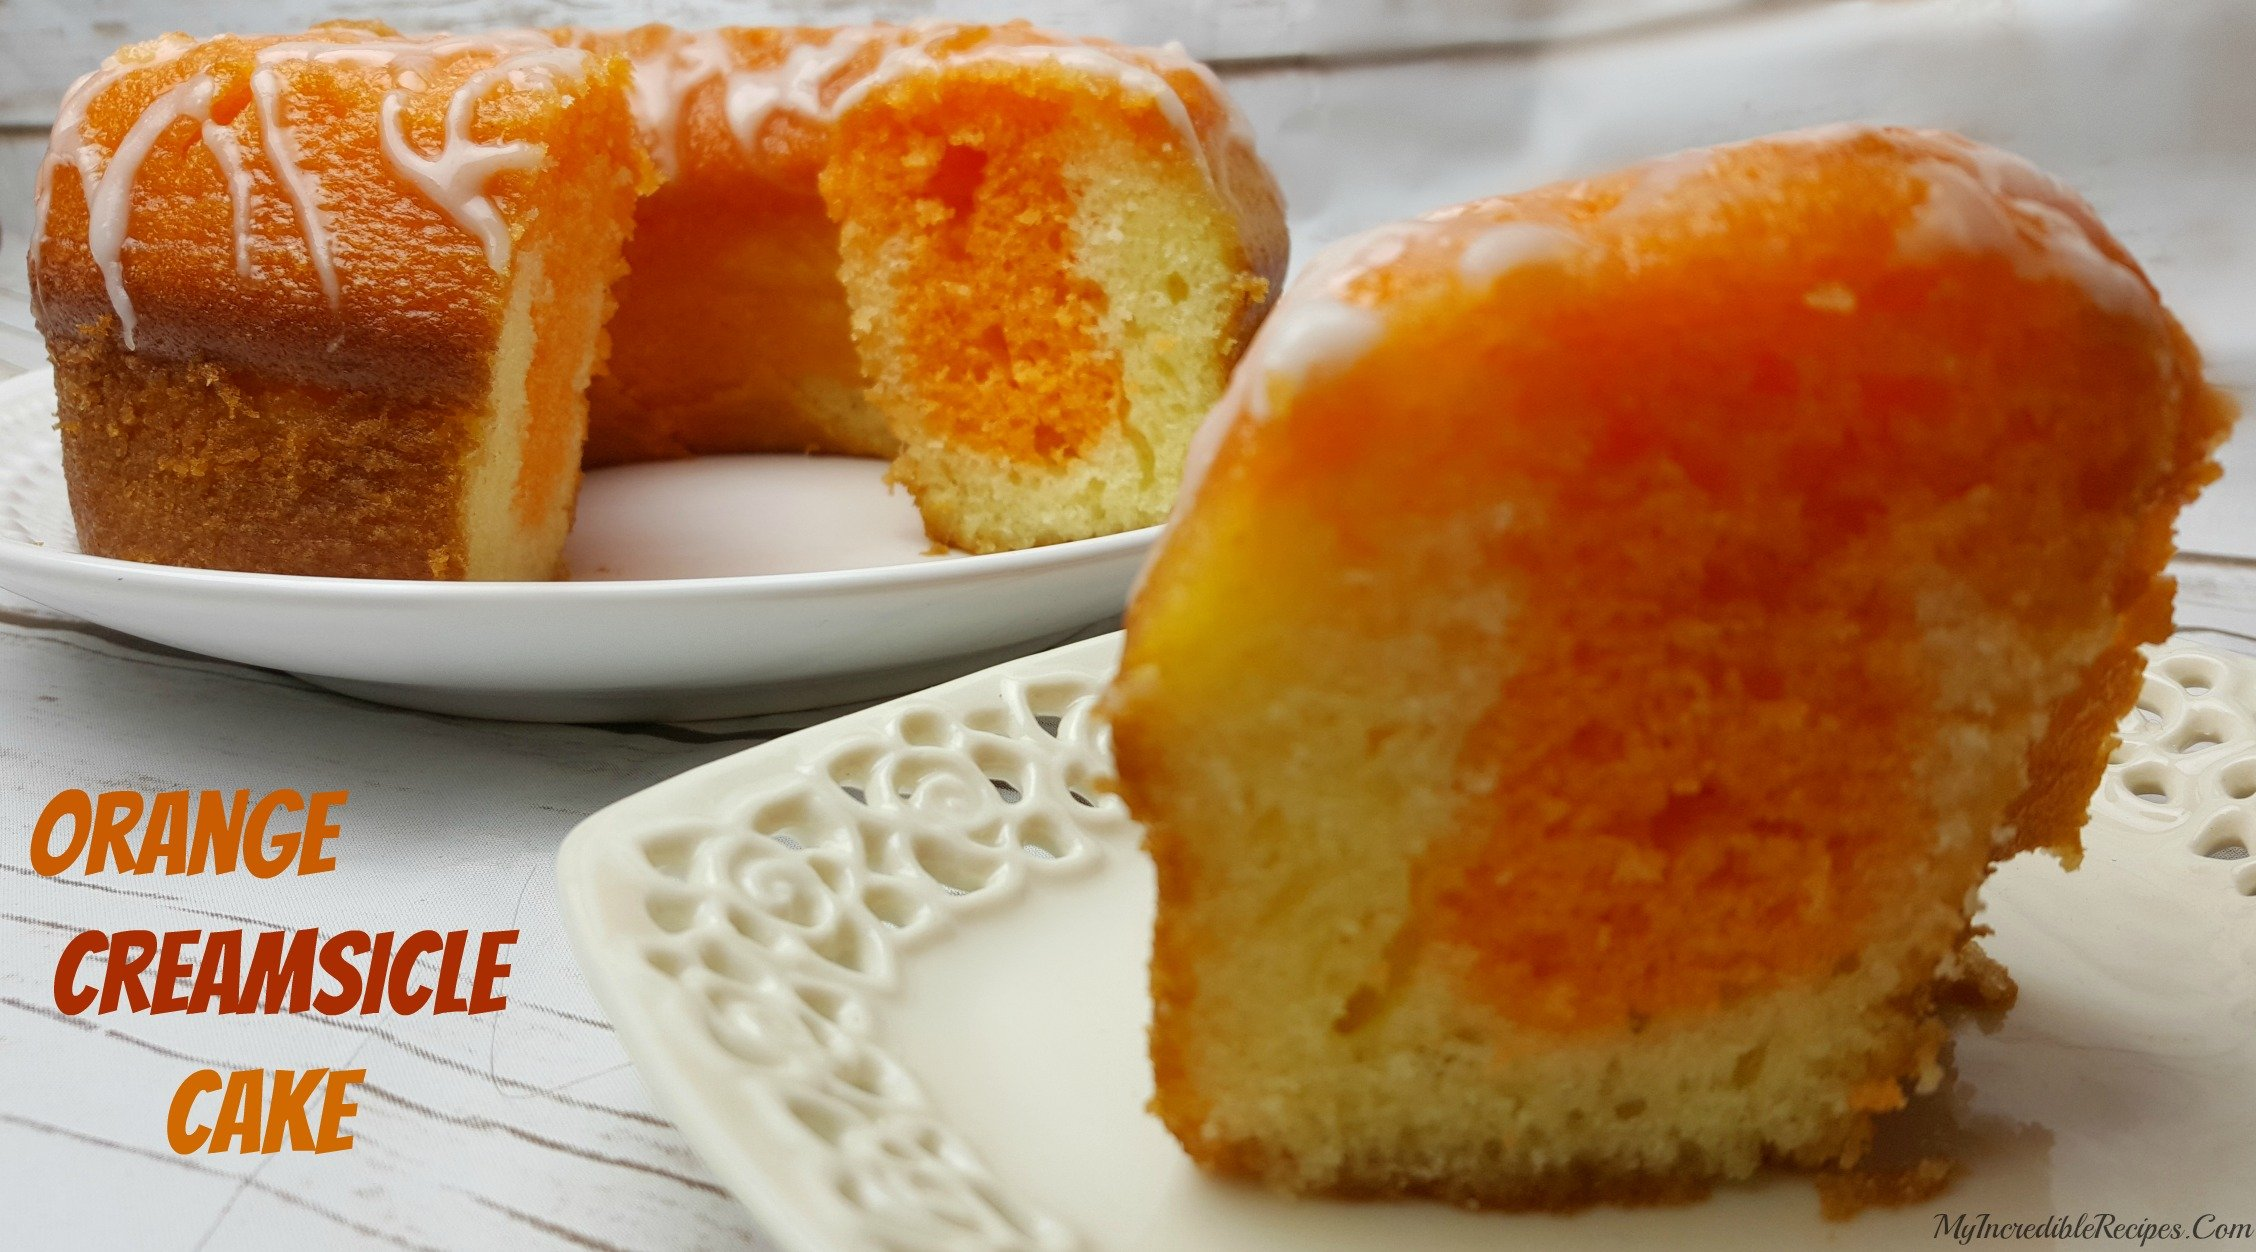 Ingredient Orange Creamsicle Cake